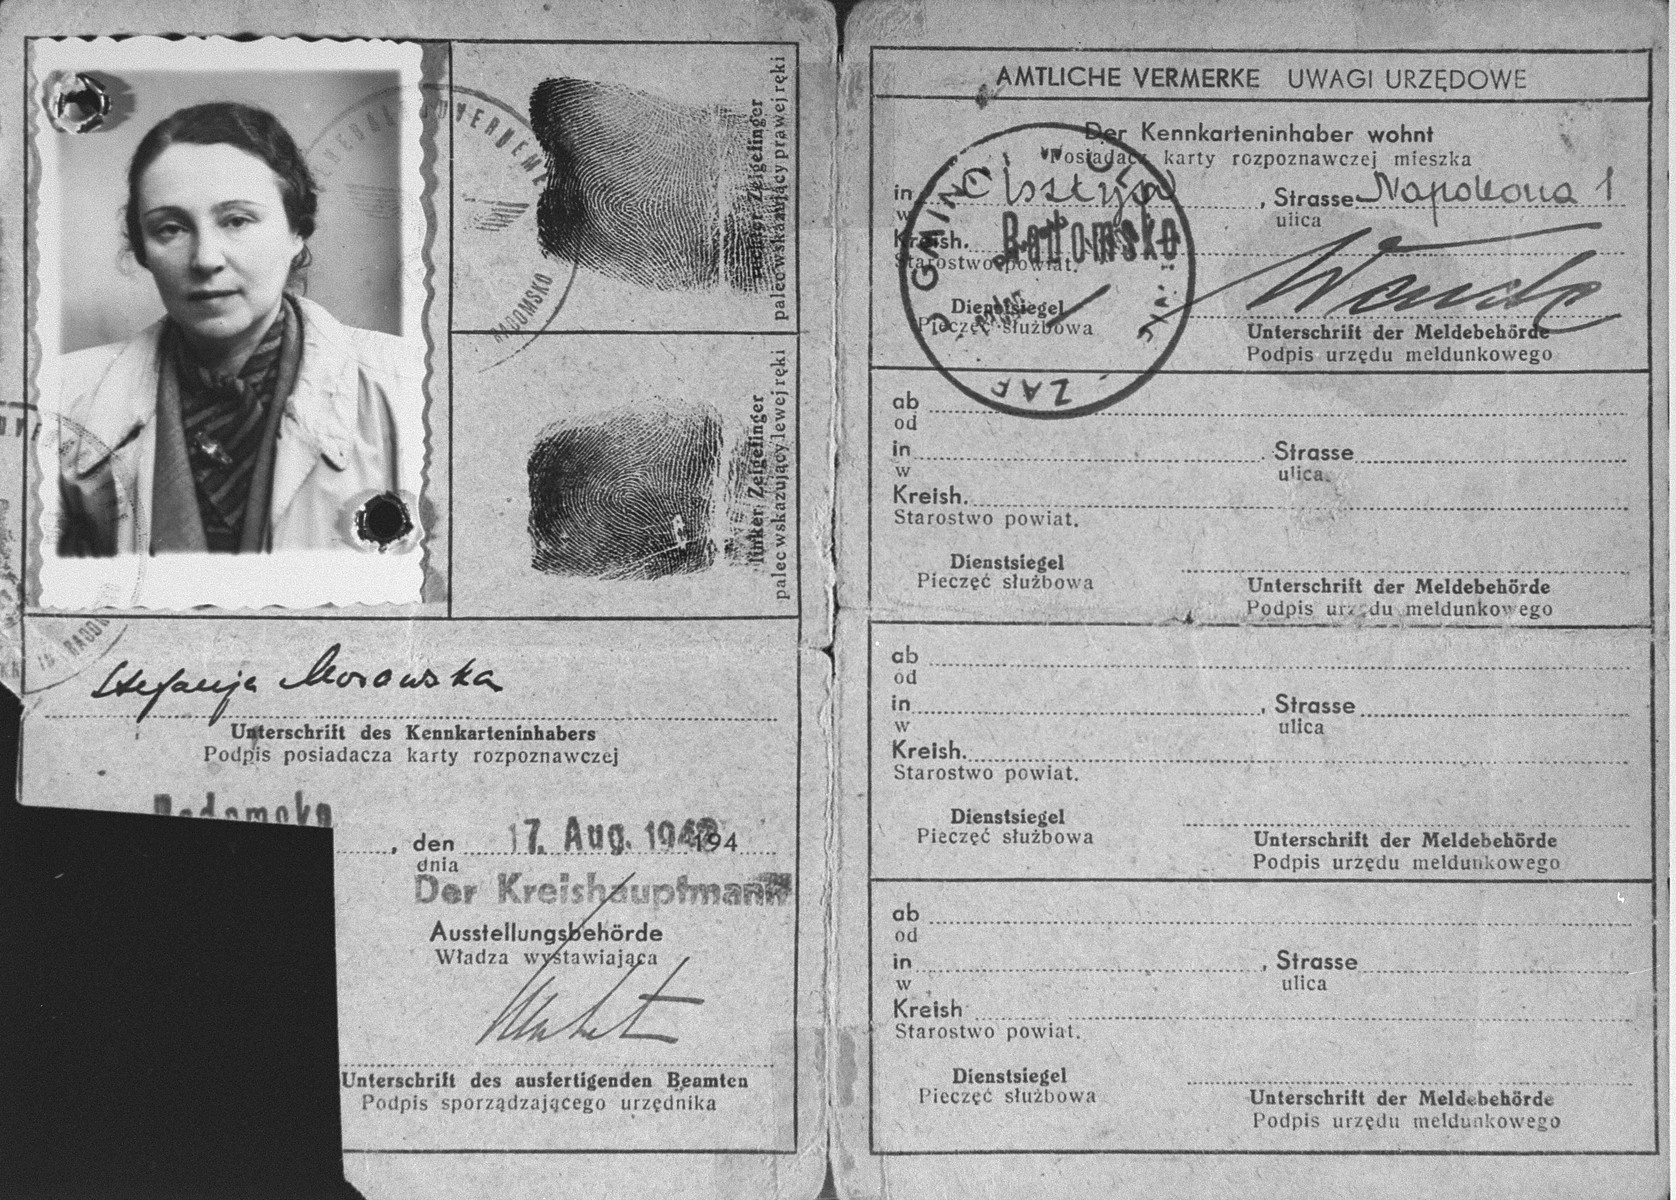 False identification papers used by the donor's mother-in-law Stefania Gutentag Minc during her years of hiding in occupied Poland.  Minc lived under the asumed name of Stefanja Korowska.